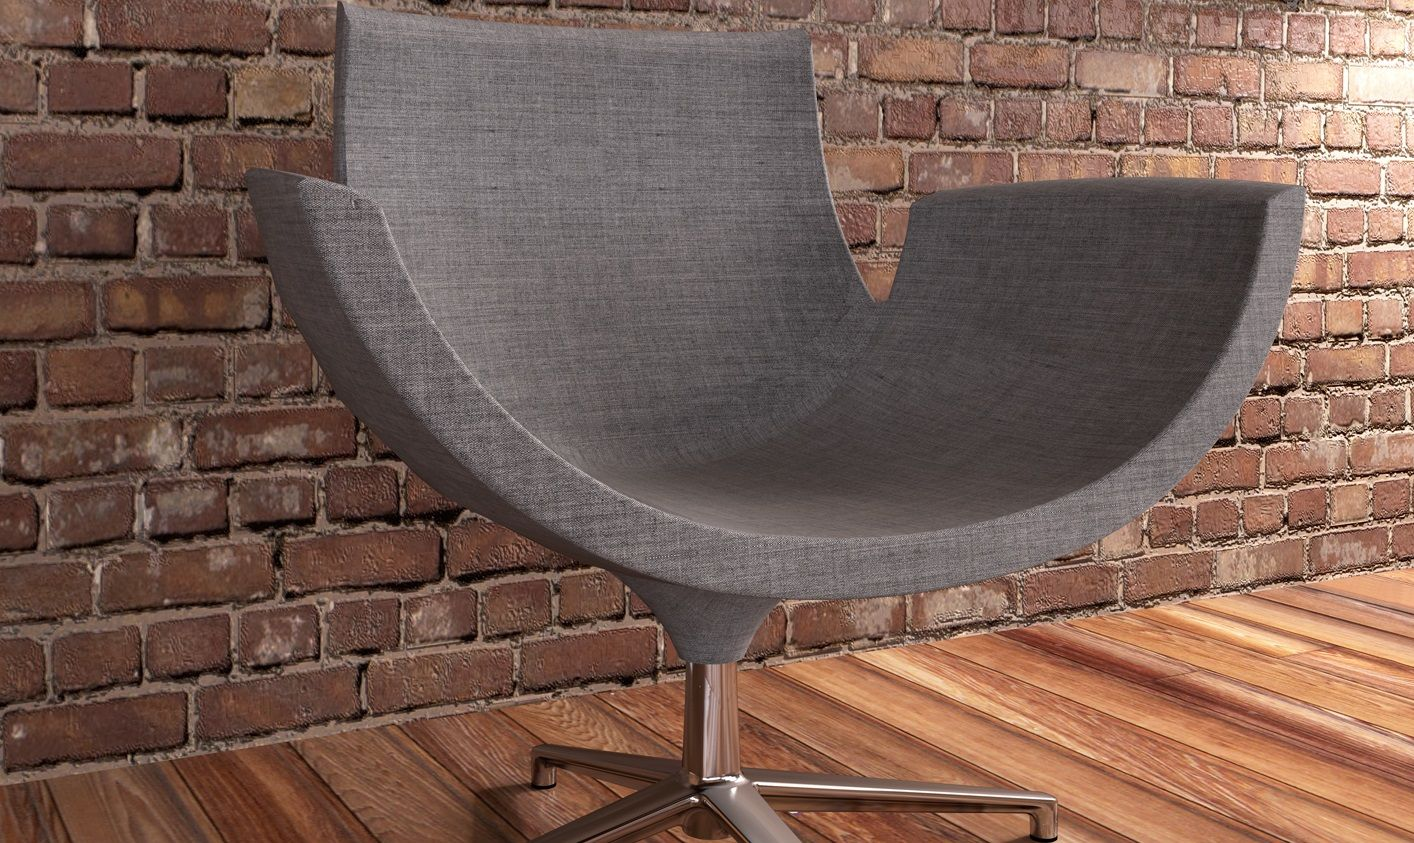 IQ Soft Seating - Product Page: http://www.genesys-uk.com/Soft-Seating/IQ-Soft-Seating/IQ-Soft-Seating.Html  Genesys Office Furniture Home Page: http://www.genesys-uk.com  IQ Soft Seating is radical, yet inviting, combining a splash of creative design, with the finest comfort engineering.